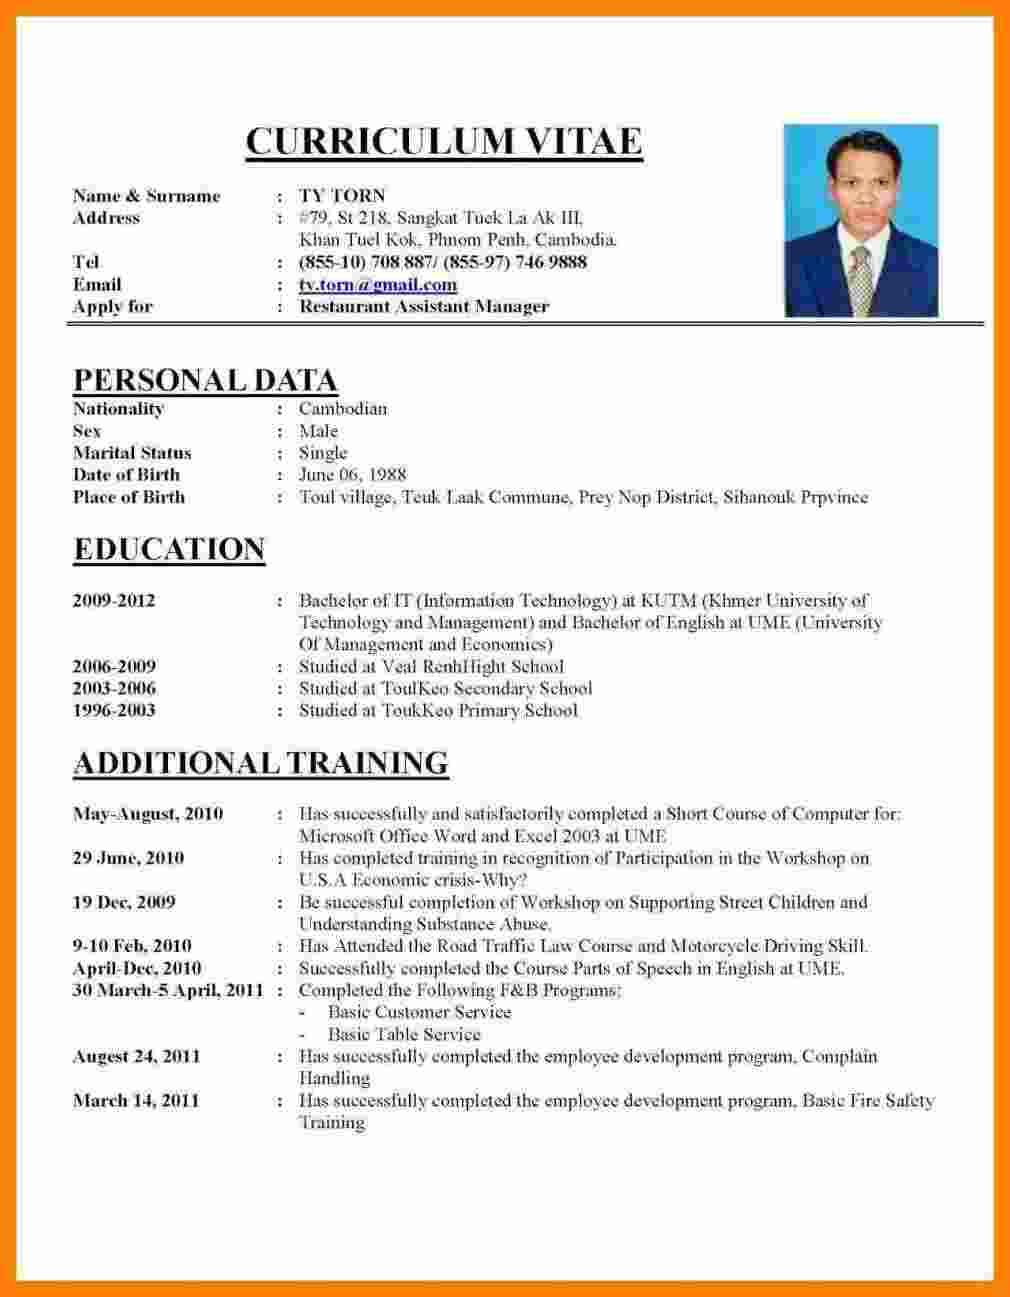 resume examples cv format for job template word sample writing application investment Resume Resume Writing For Job Application